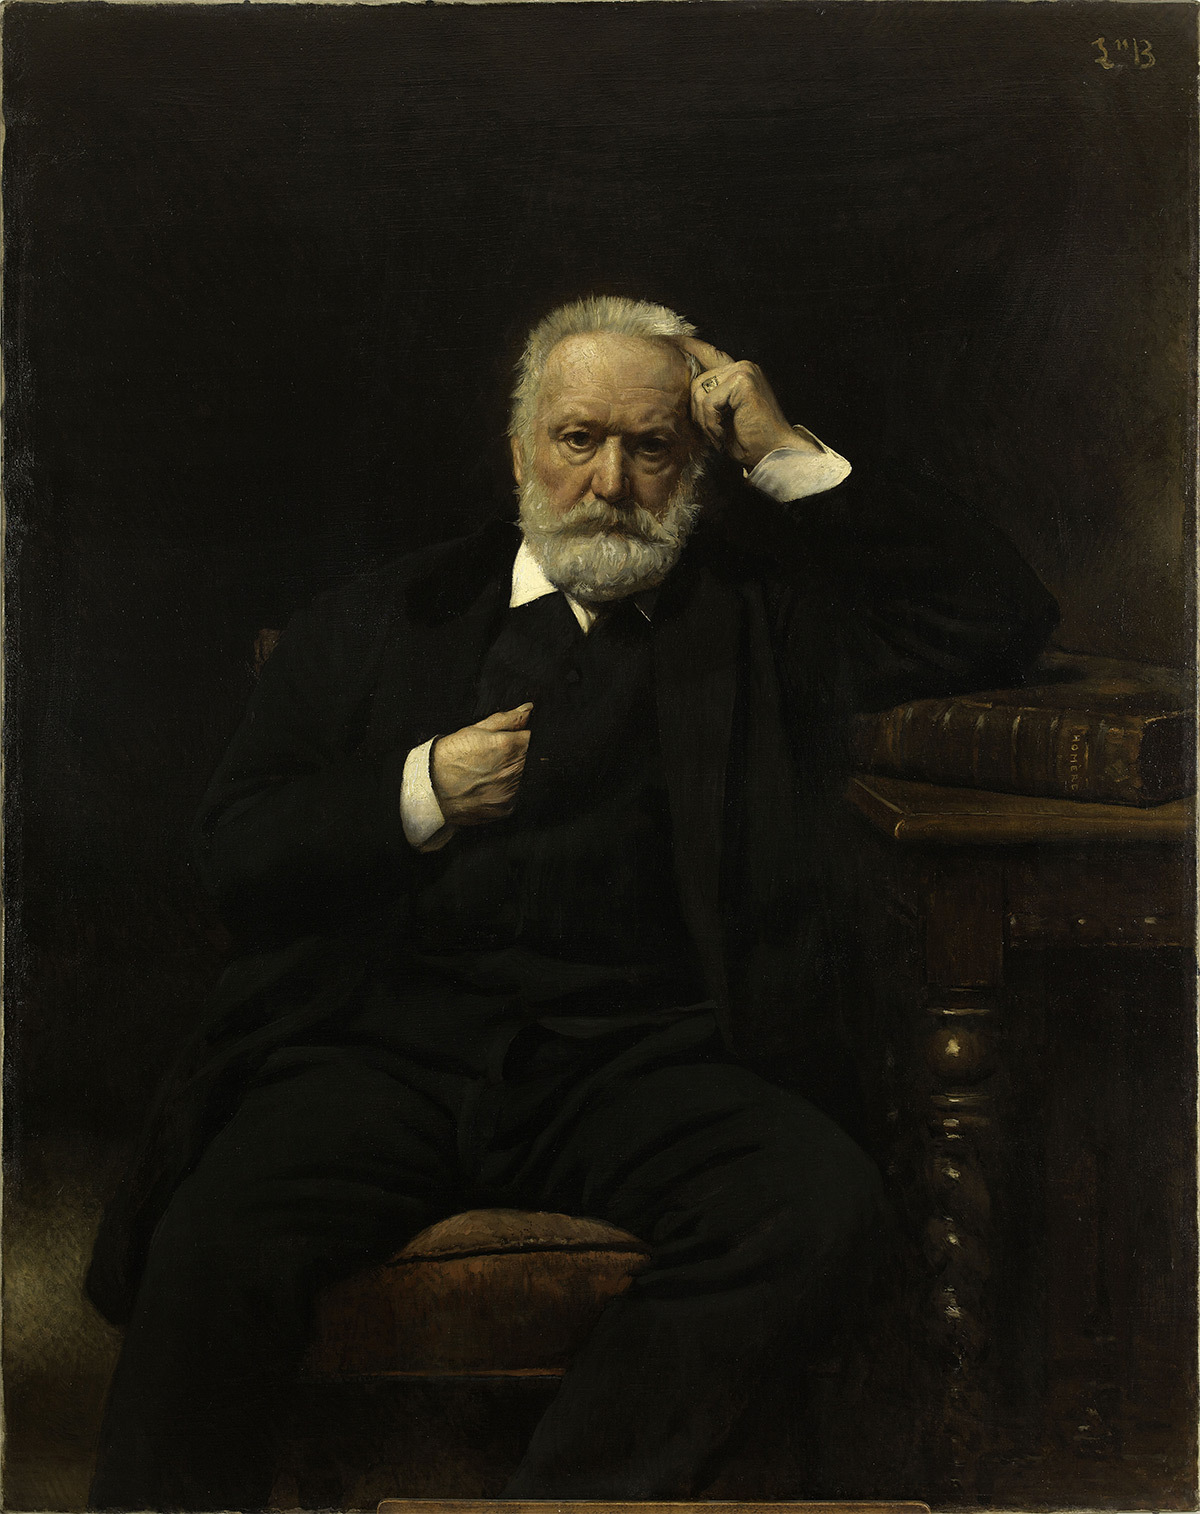 """Portrait of Mr. Victor Hugo"" by Léon Bonnat (1879), oil on canvas, part of the collection at Maison de Victor Hugo"